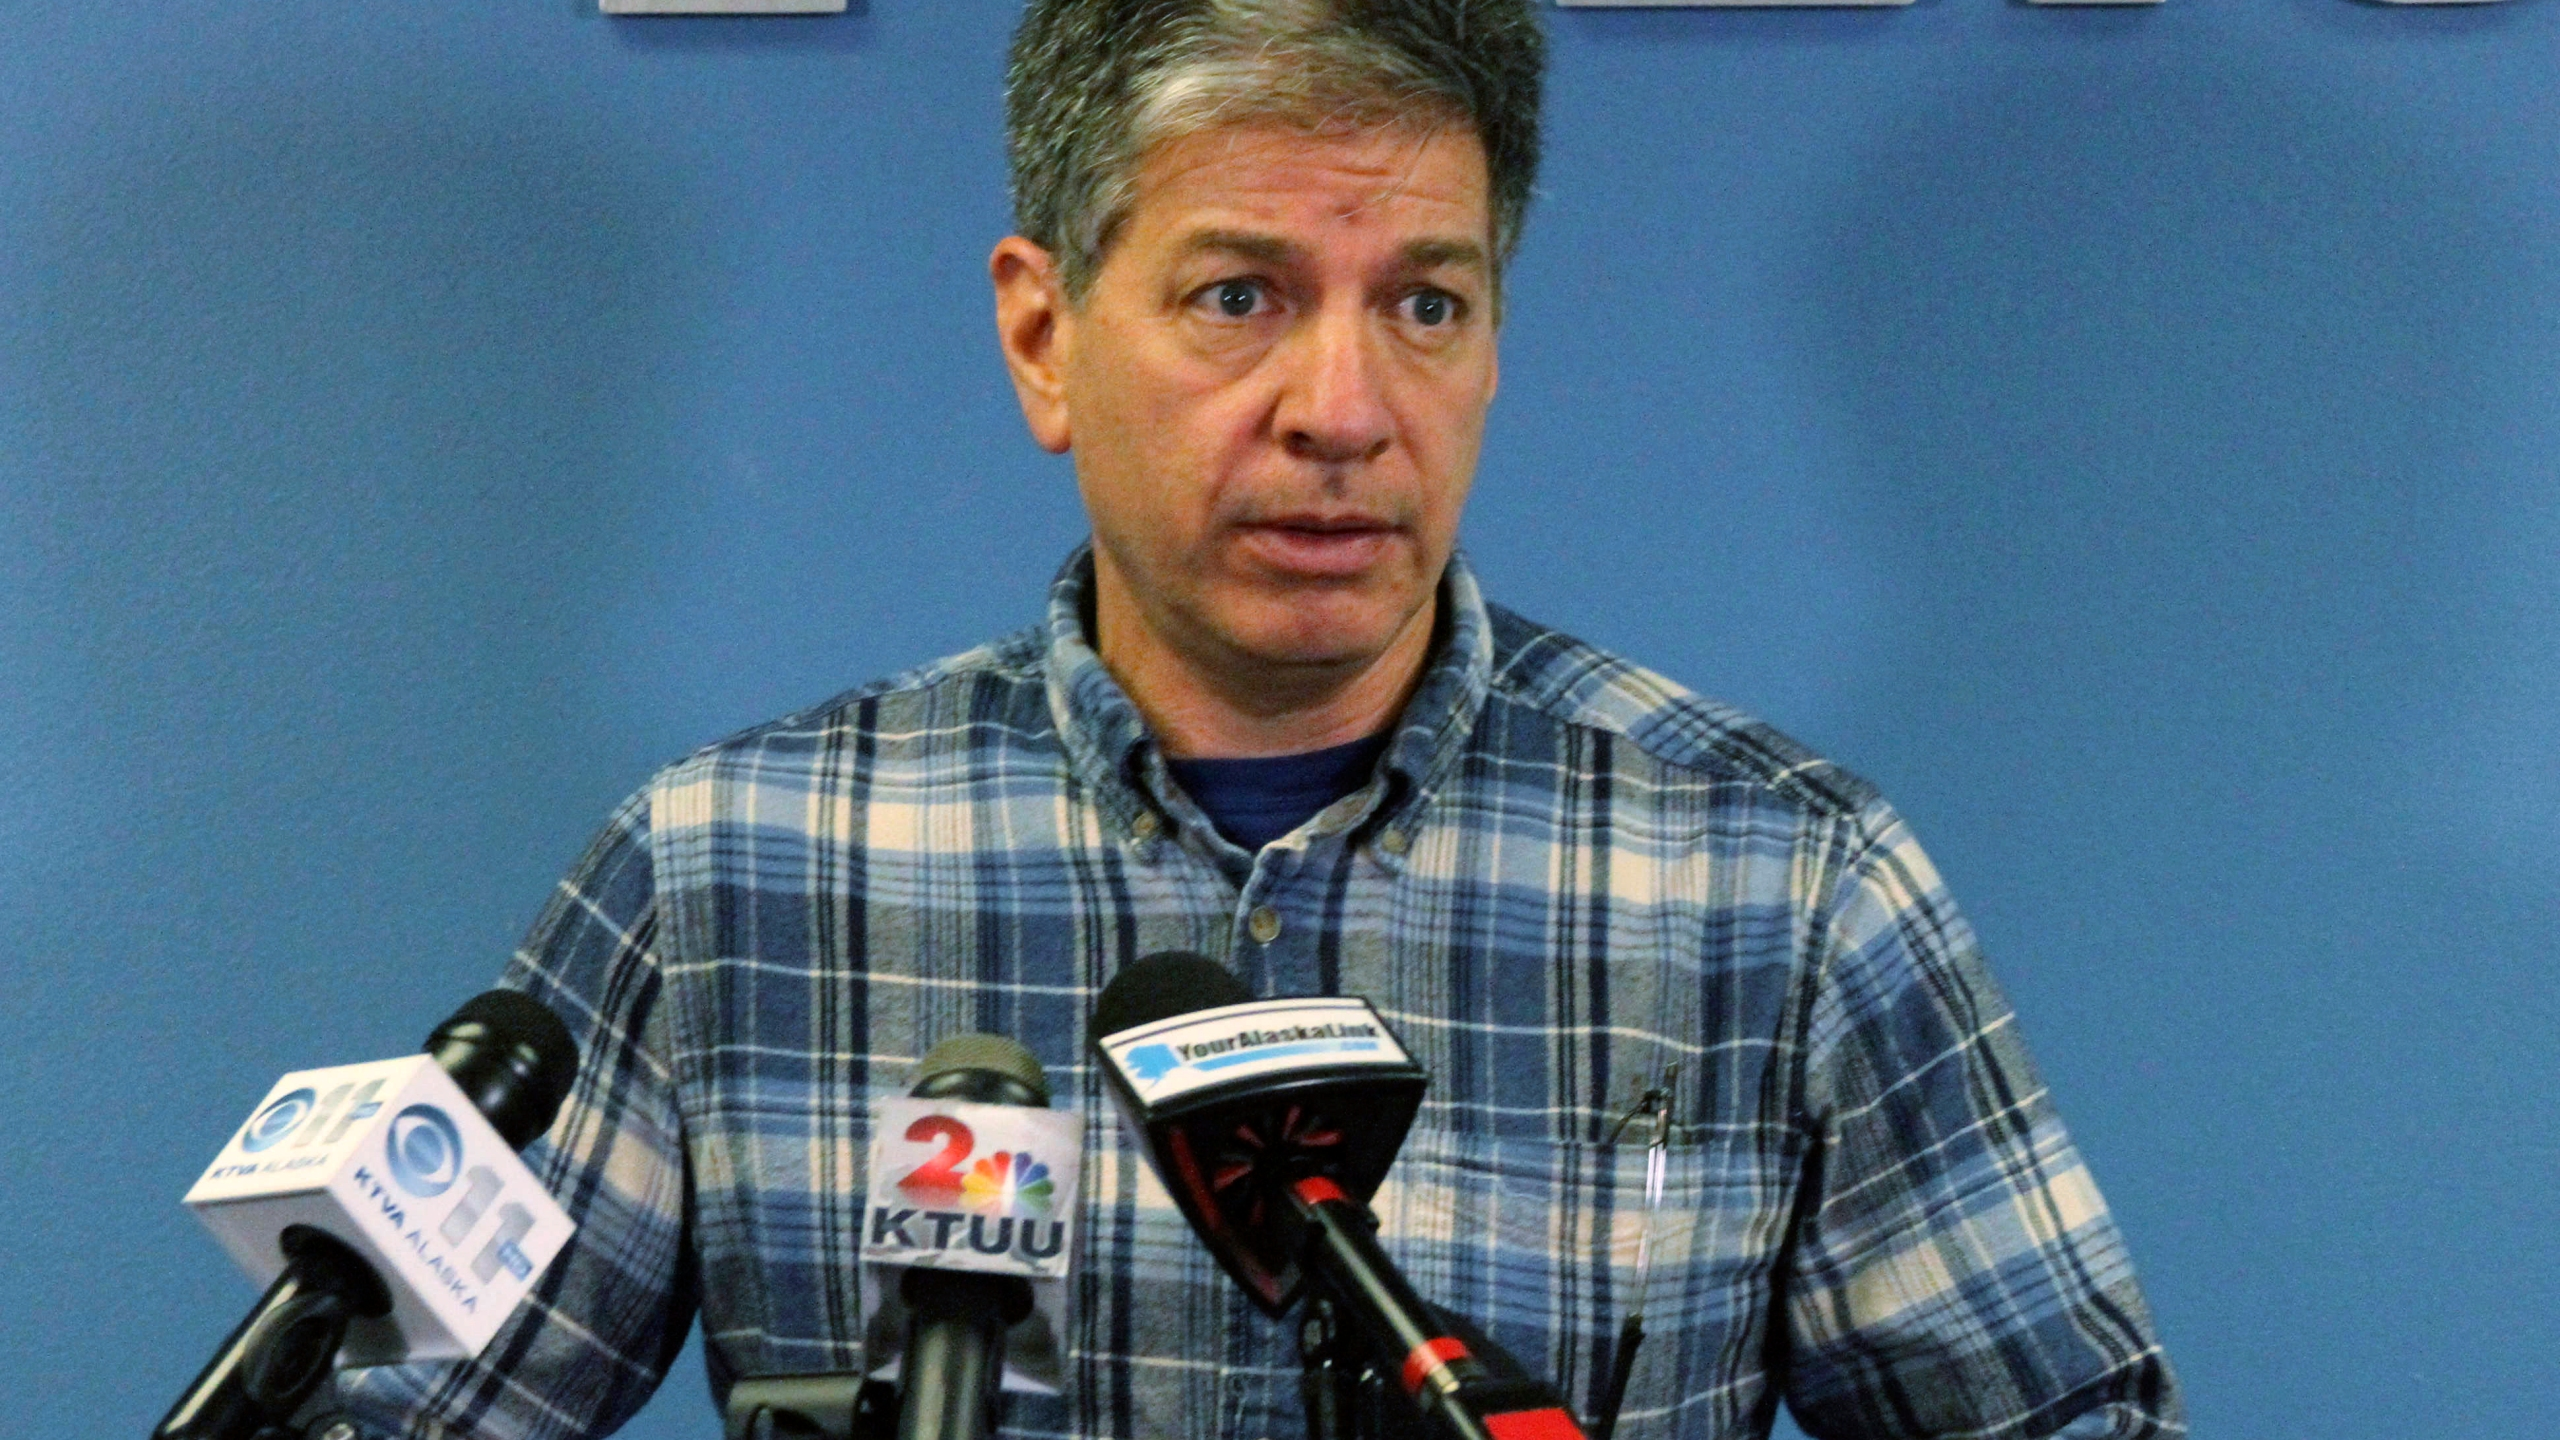 Ground News - Anchorage mayor resigns amid sexting scandal